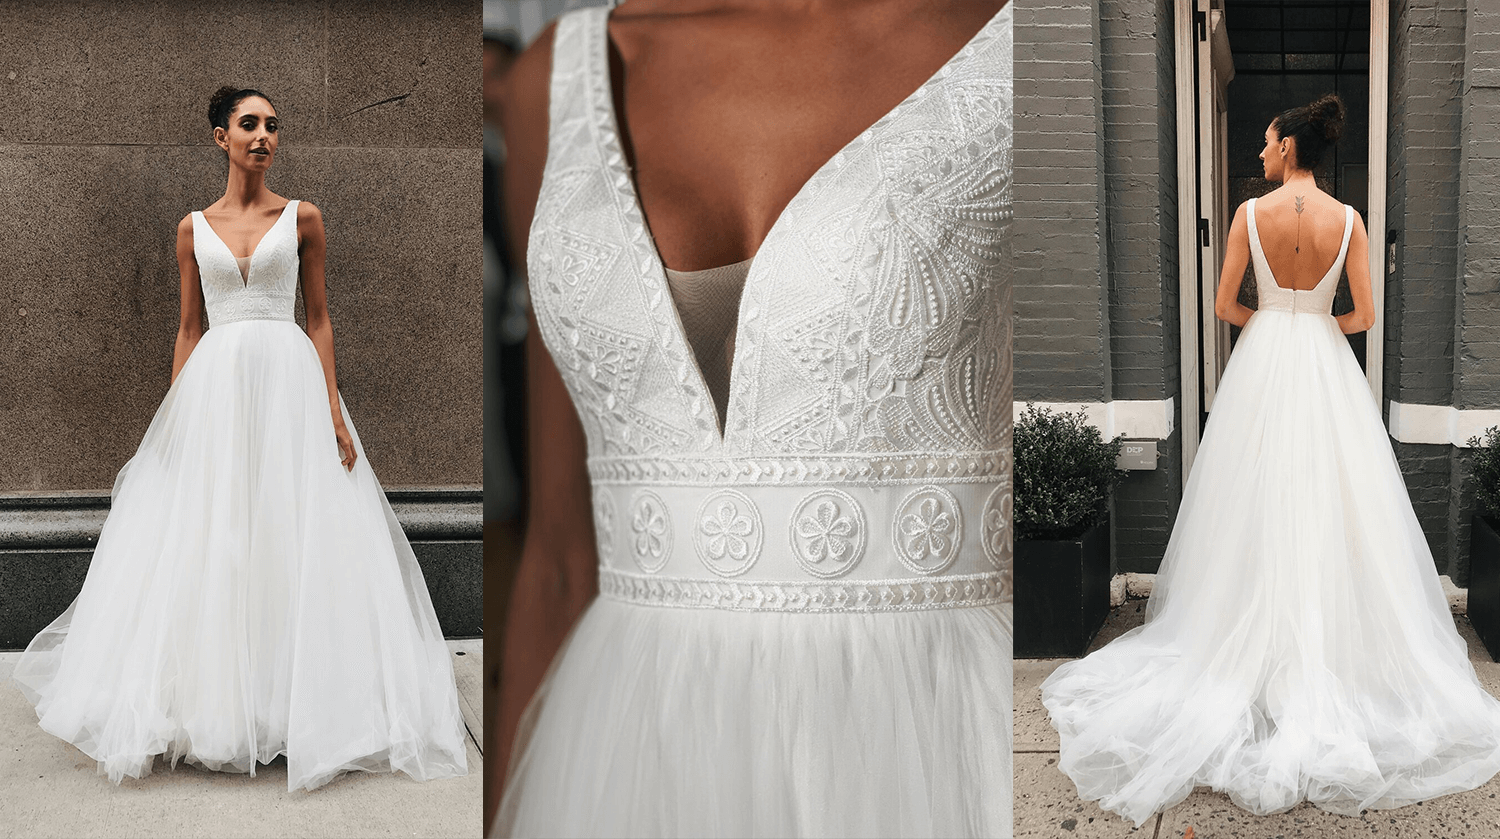 A bohemian ballgown with exquisite lace details on the bodice.